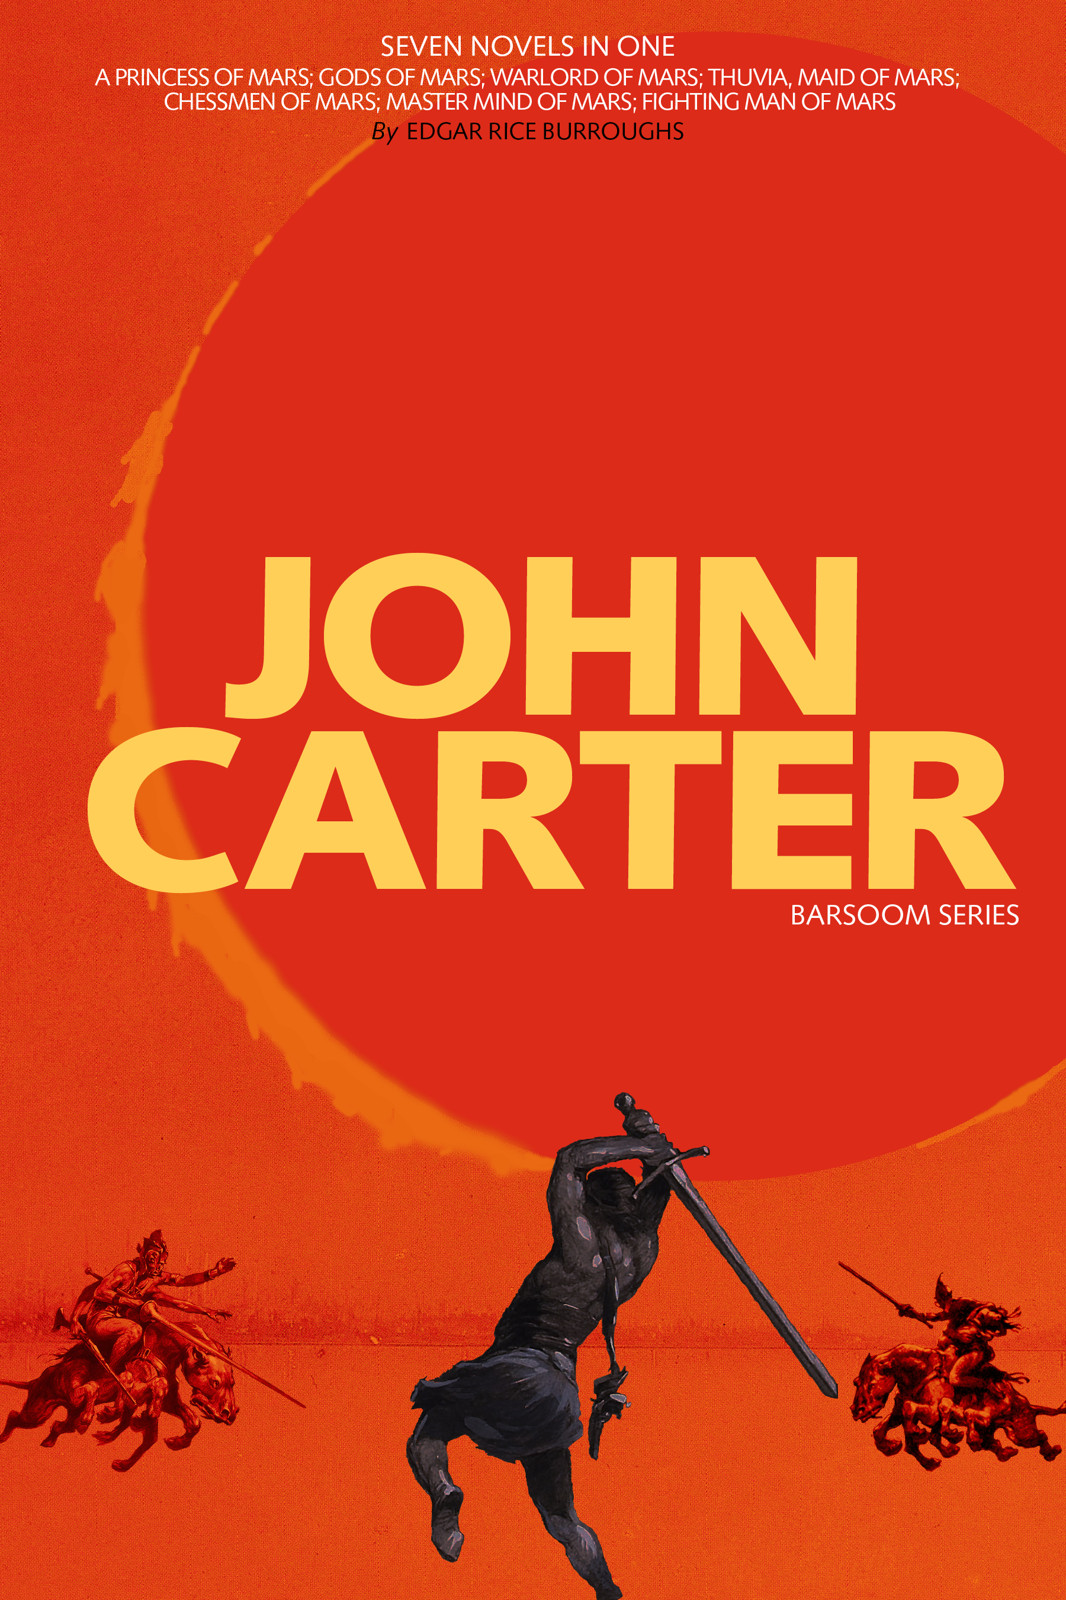 Edgar Rice Burroughs - John Carter: Barsoom Series (7 Novels) A Princess of Mars; Gods of Mars; Warlord of Mars; Thuvia, Maid of Mars; Chessmen of Mars; Master Mind of Mars; Fighting Man of Mars (Science Fiction)